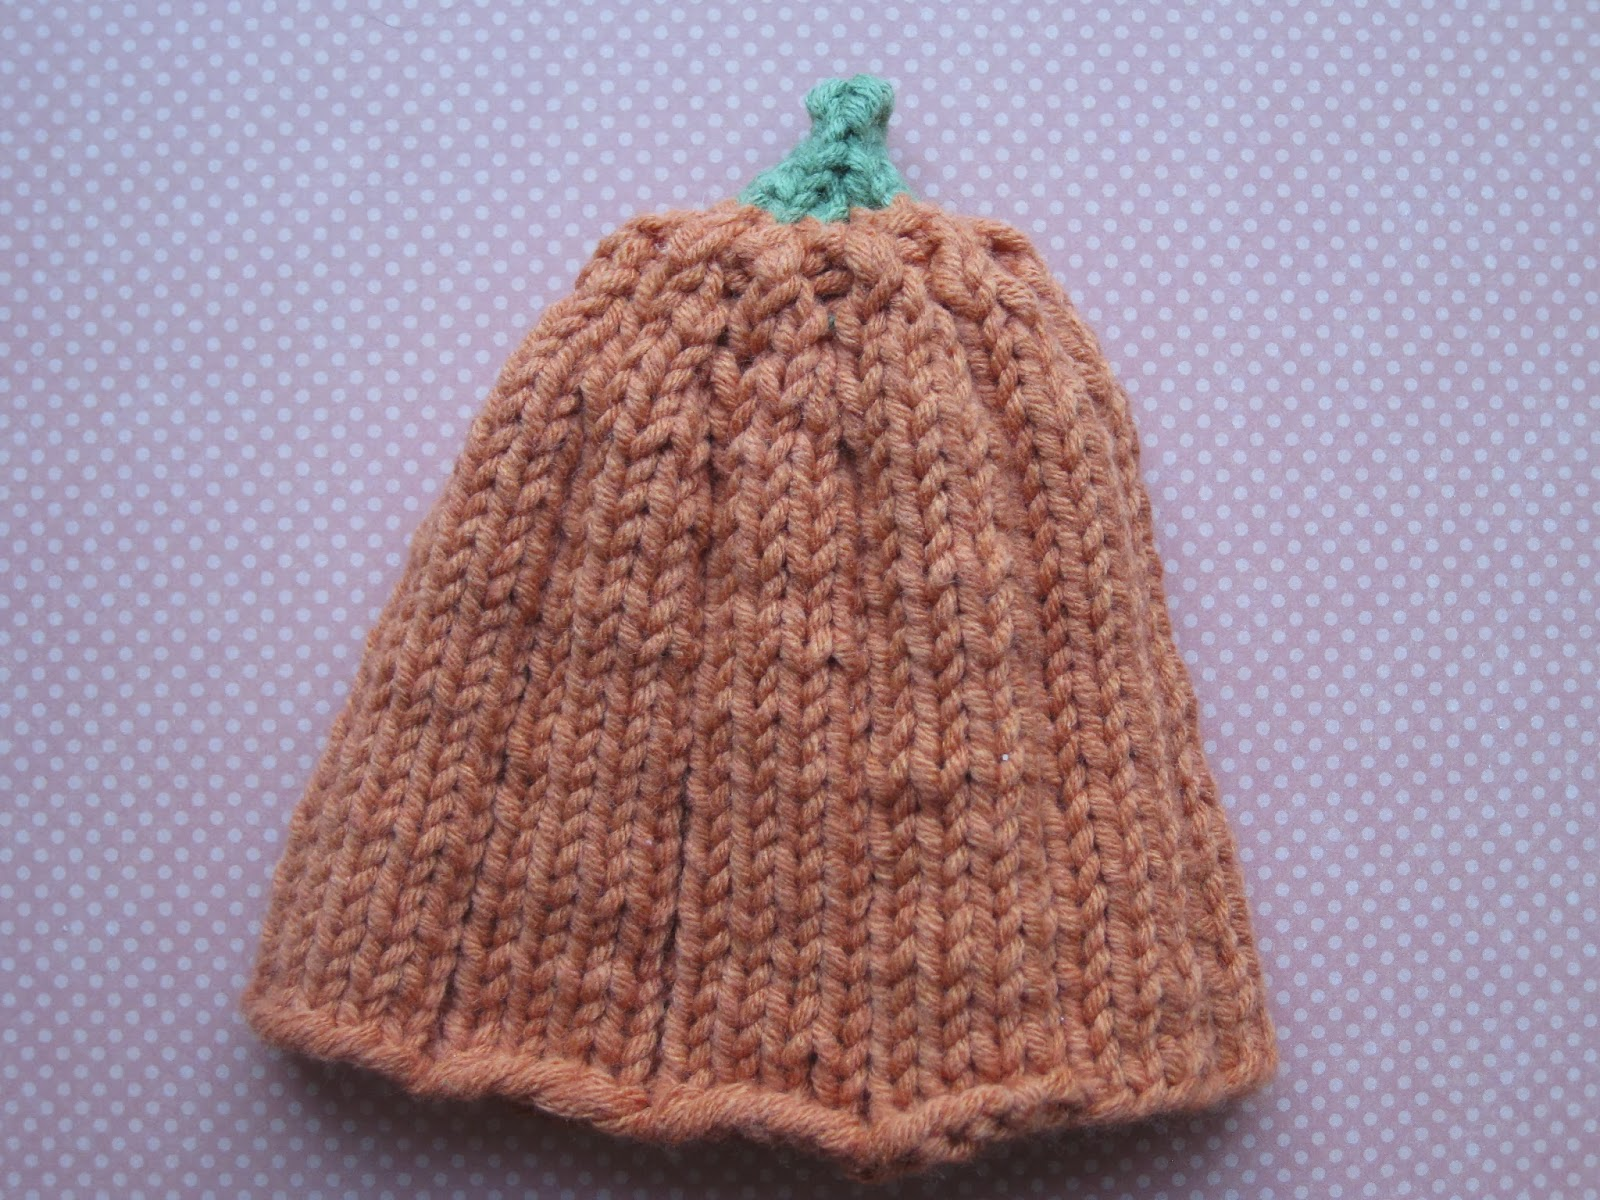 Knitted Infant Hat Patterns : Oma Socks: Newborn Pumpkin Hat Knitting Pattern